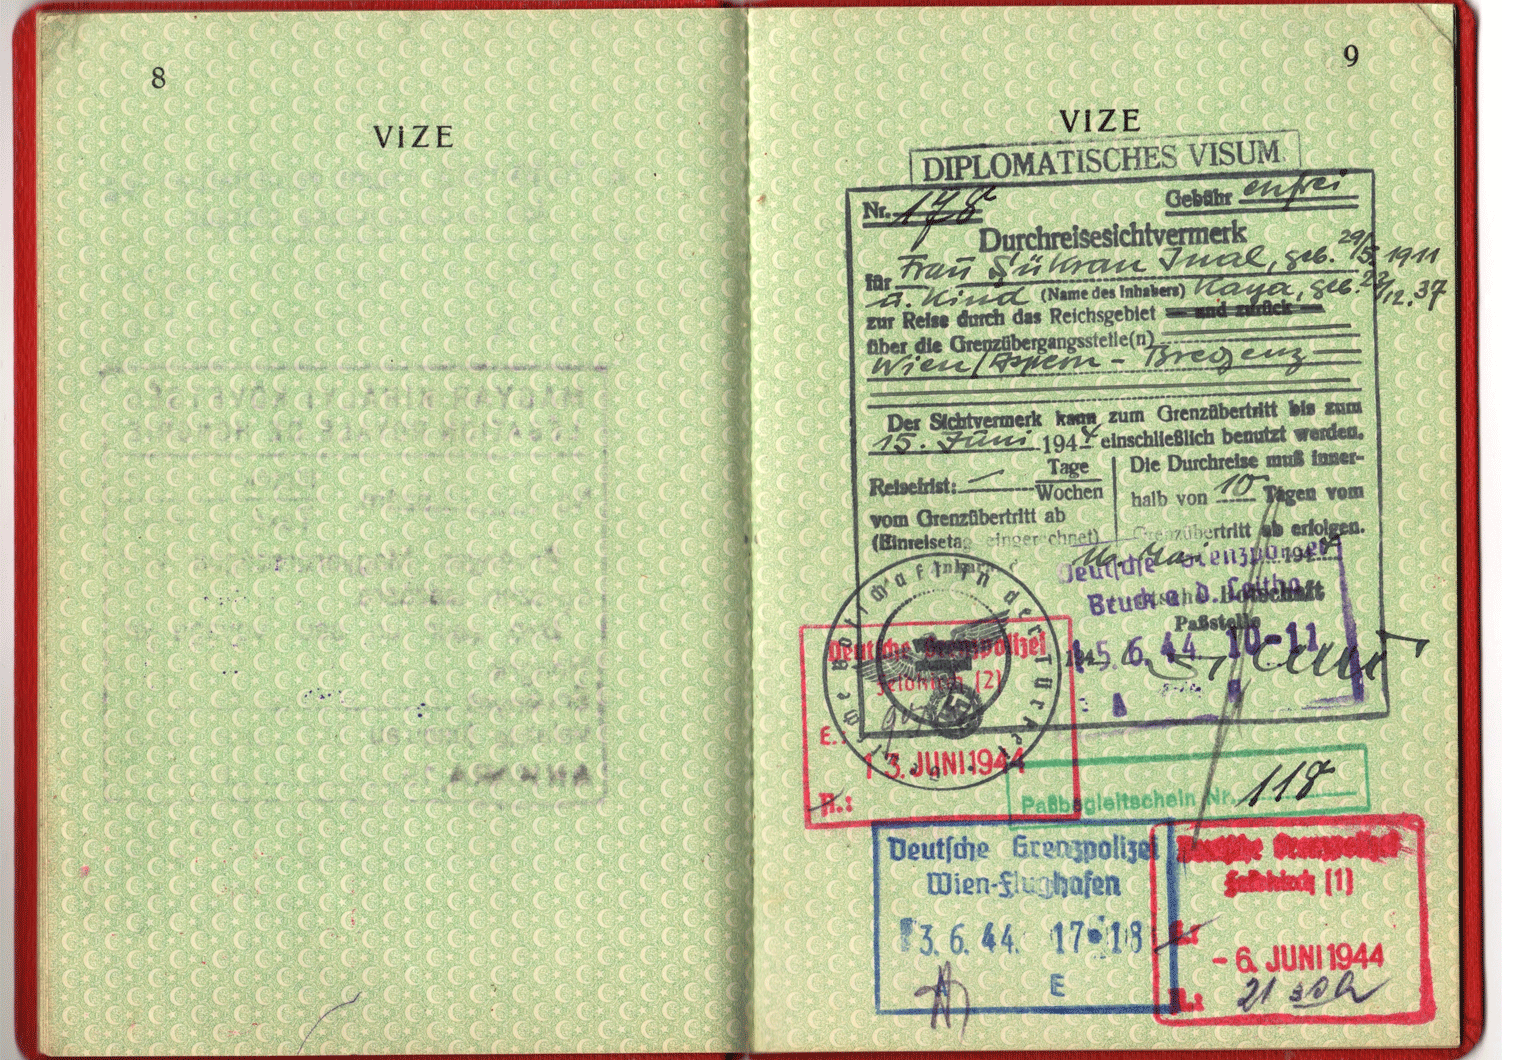 WW2 German Diplomatic passport.